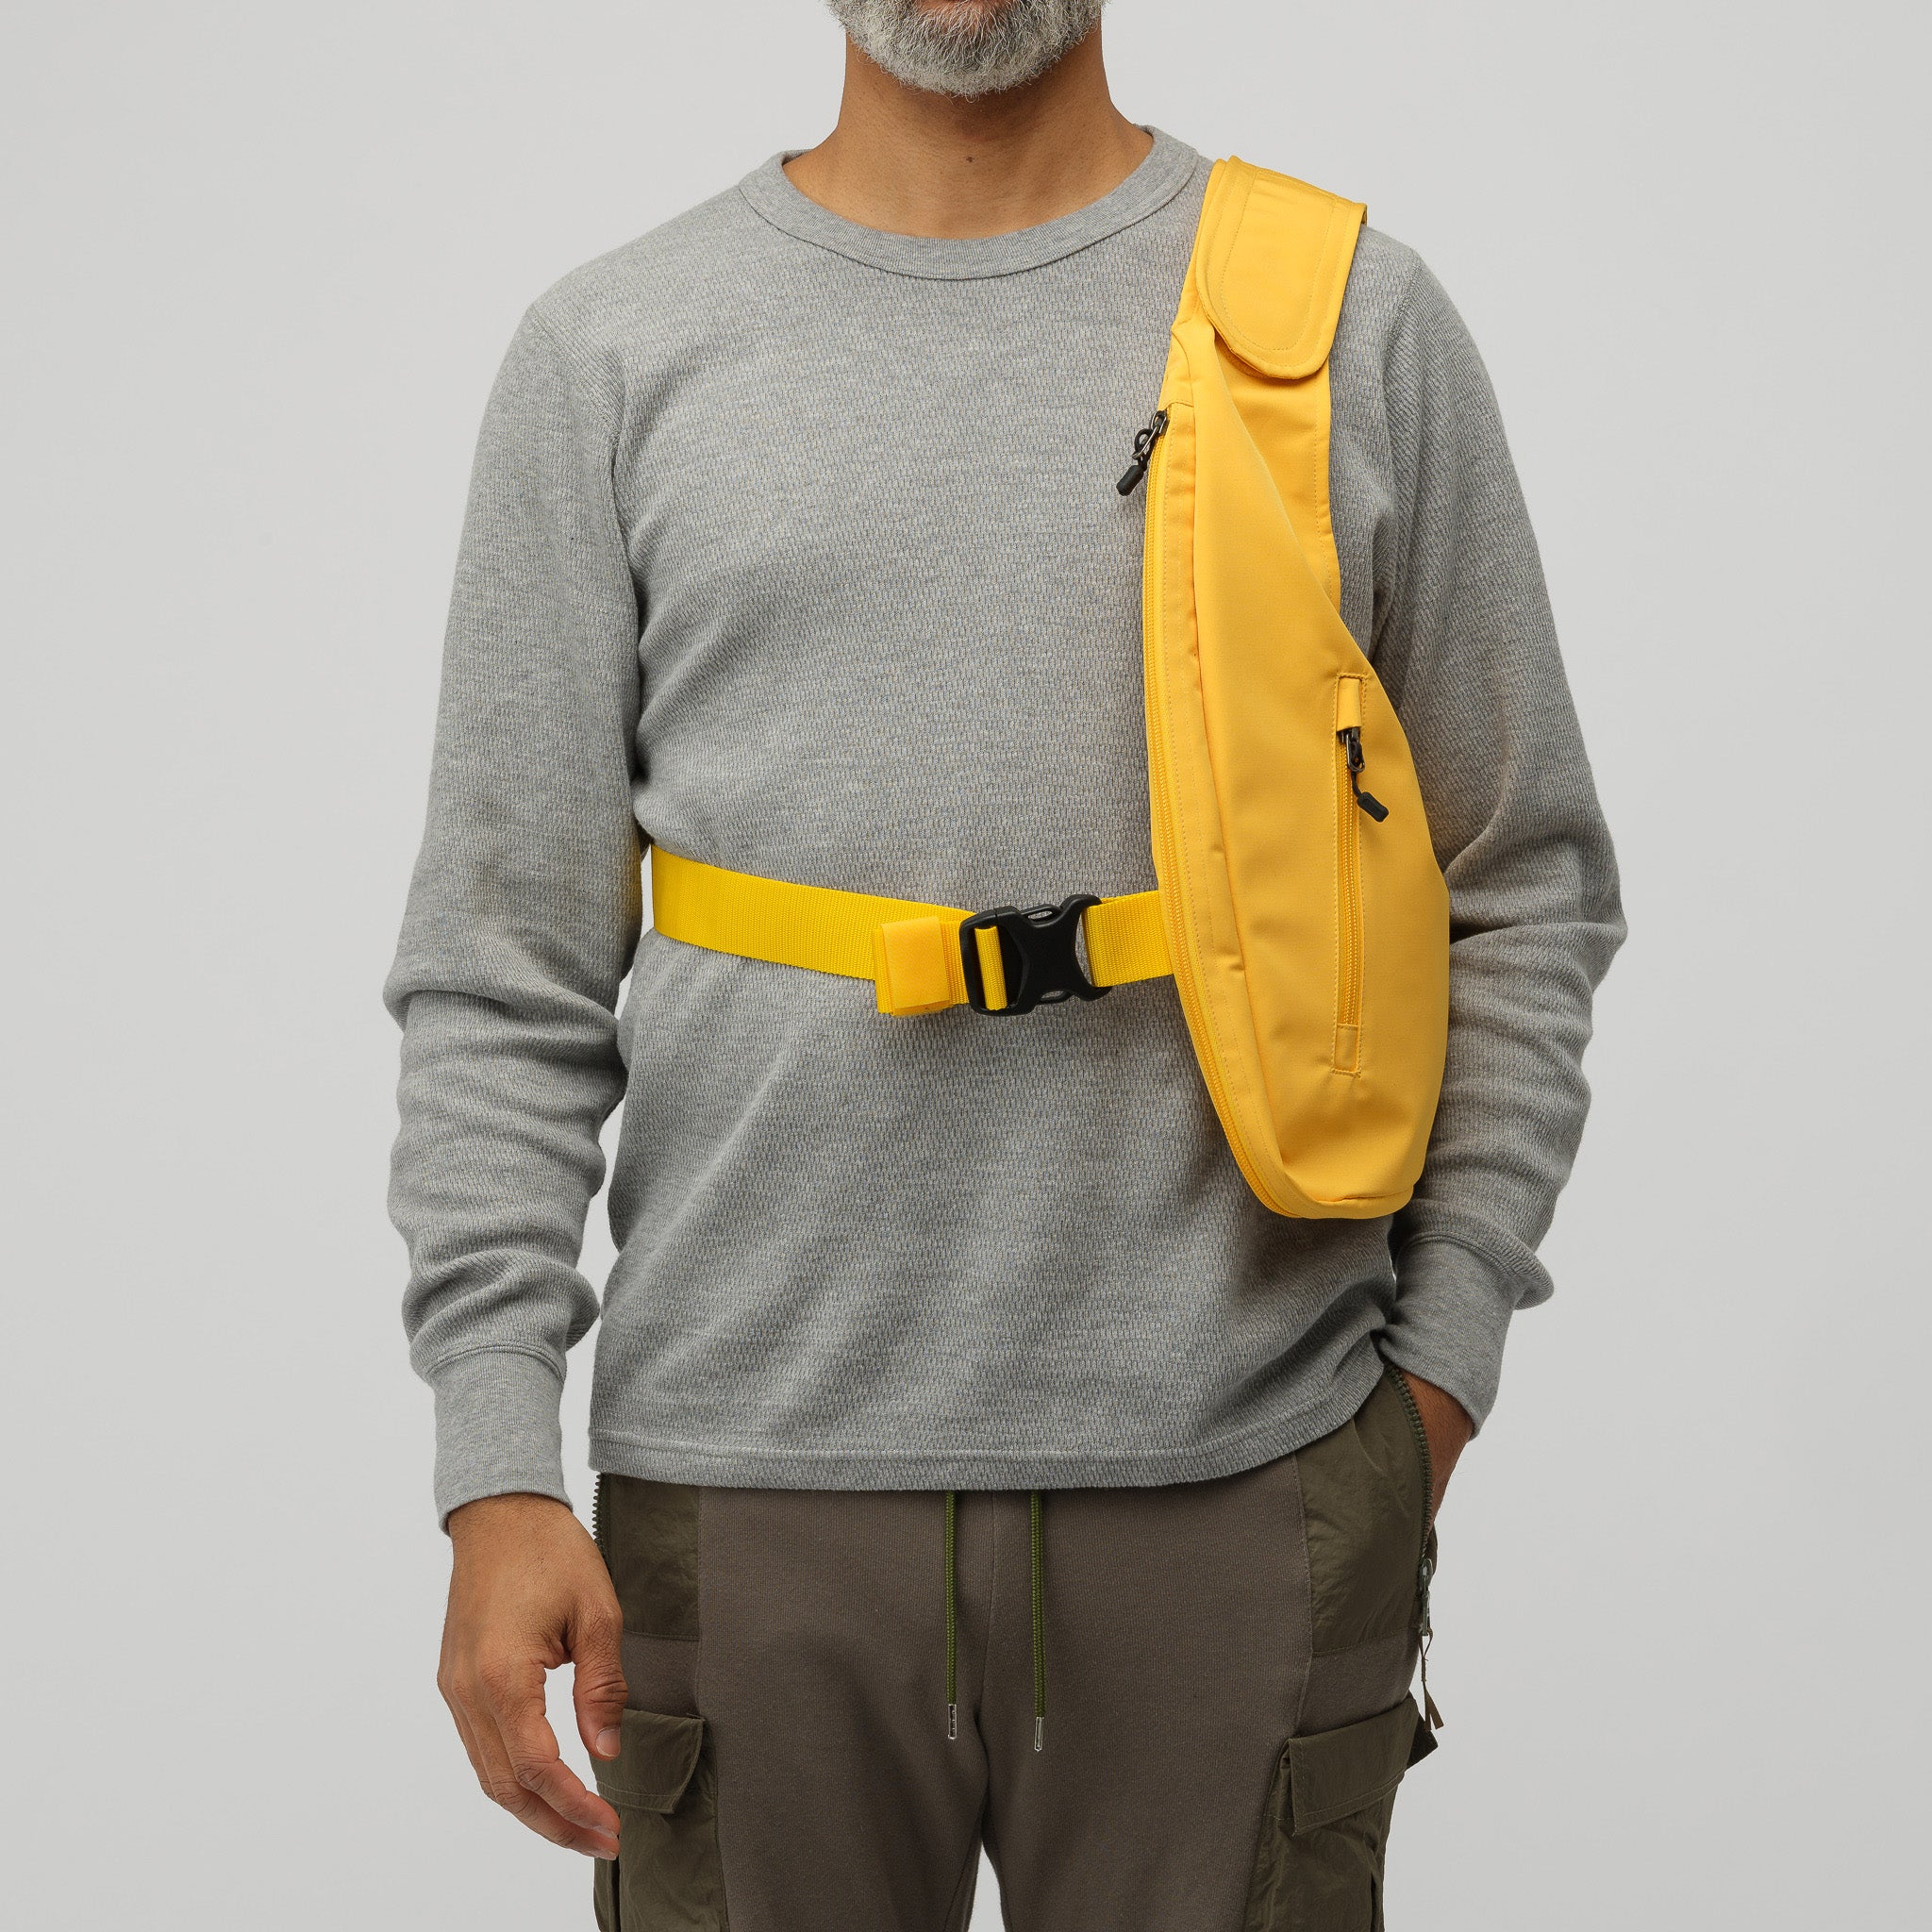 Holster Bag in Yellow